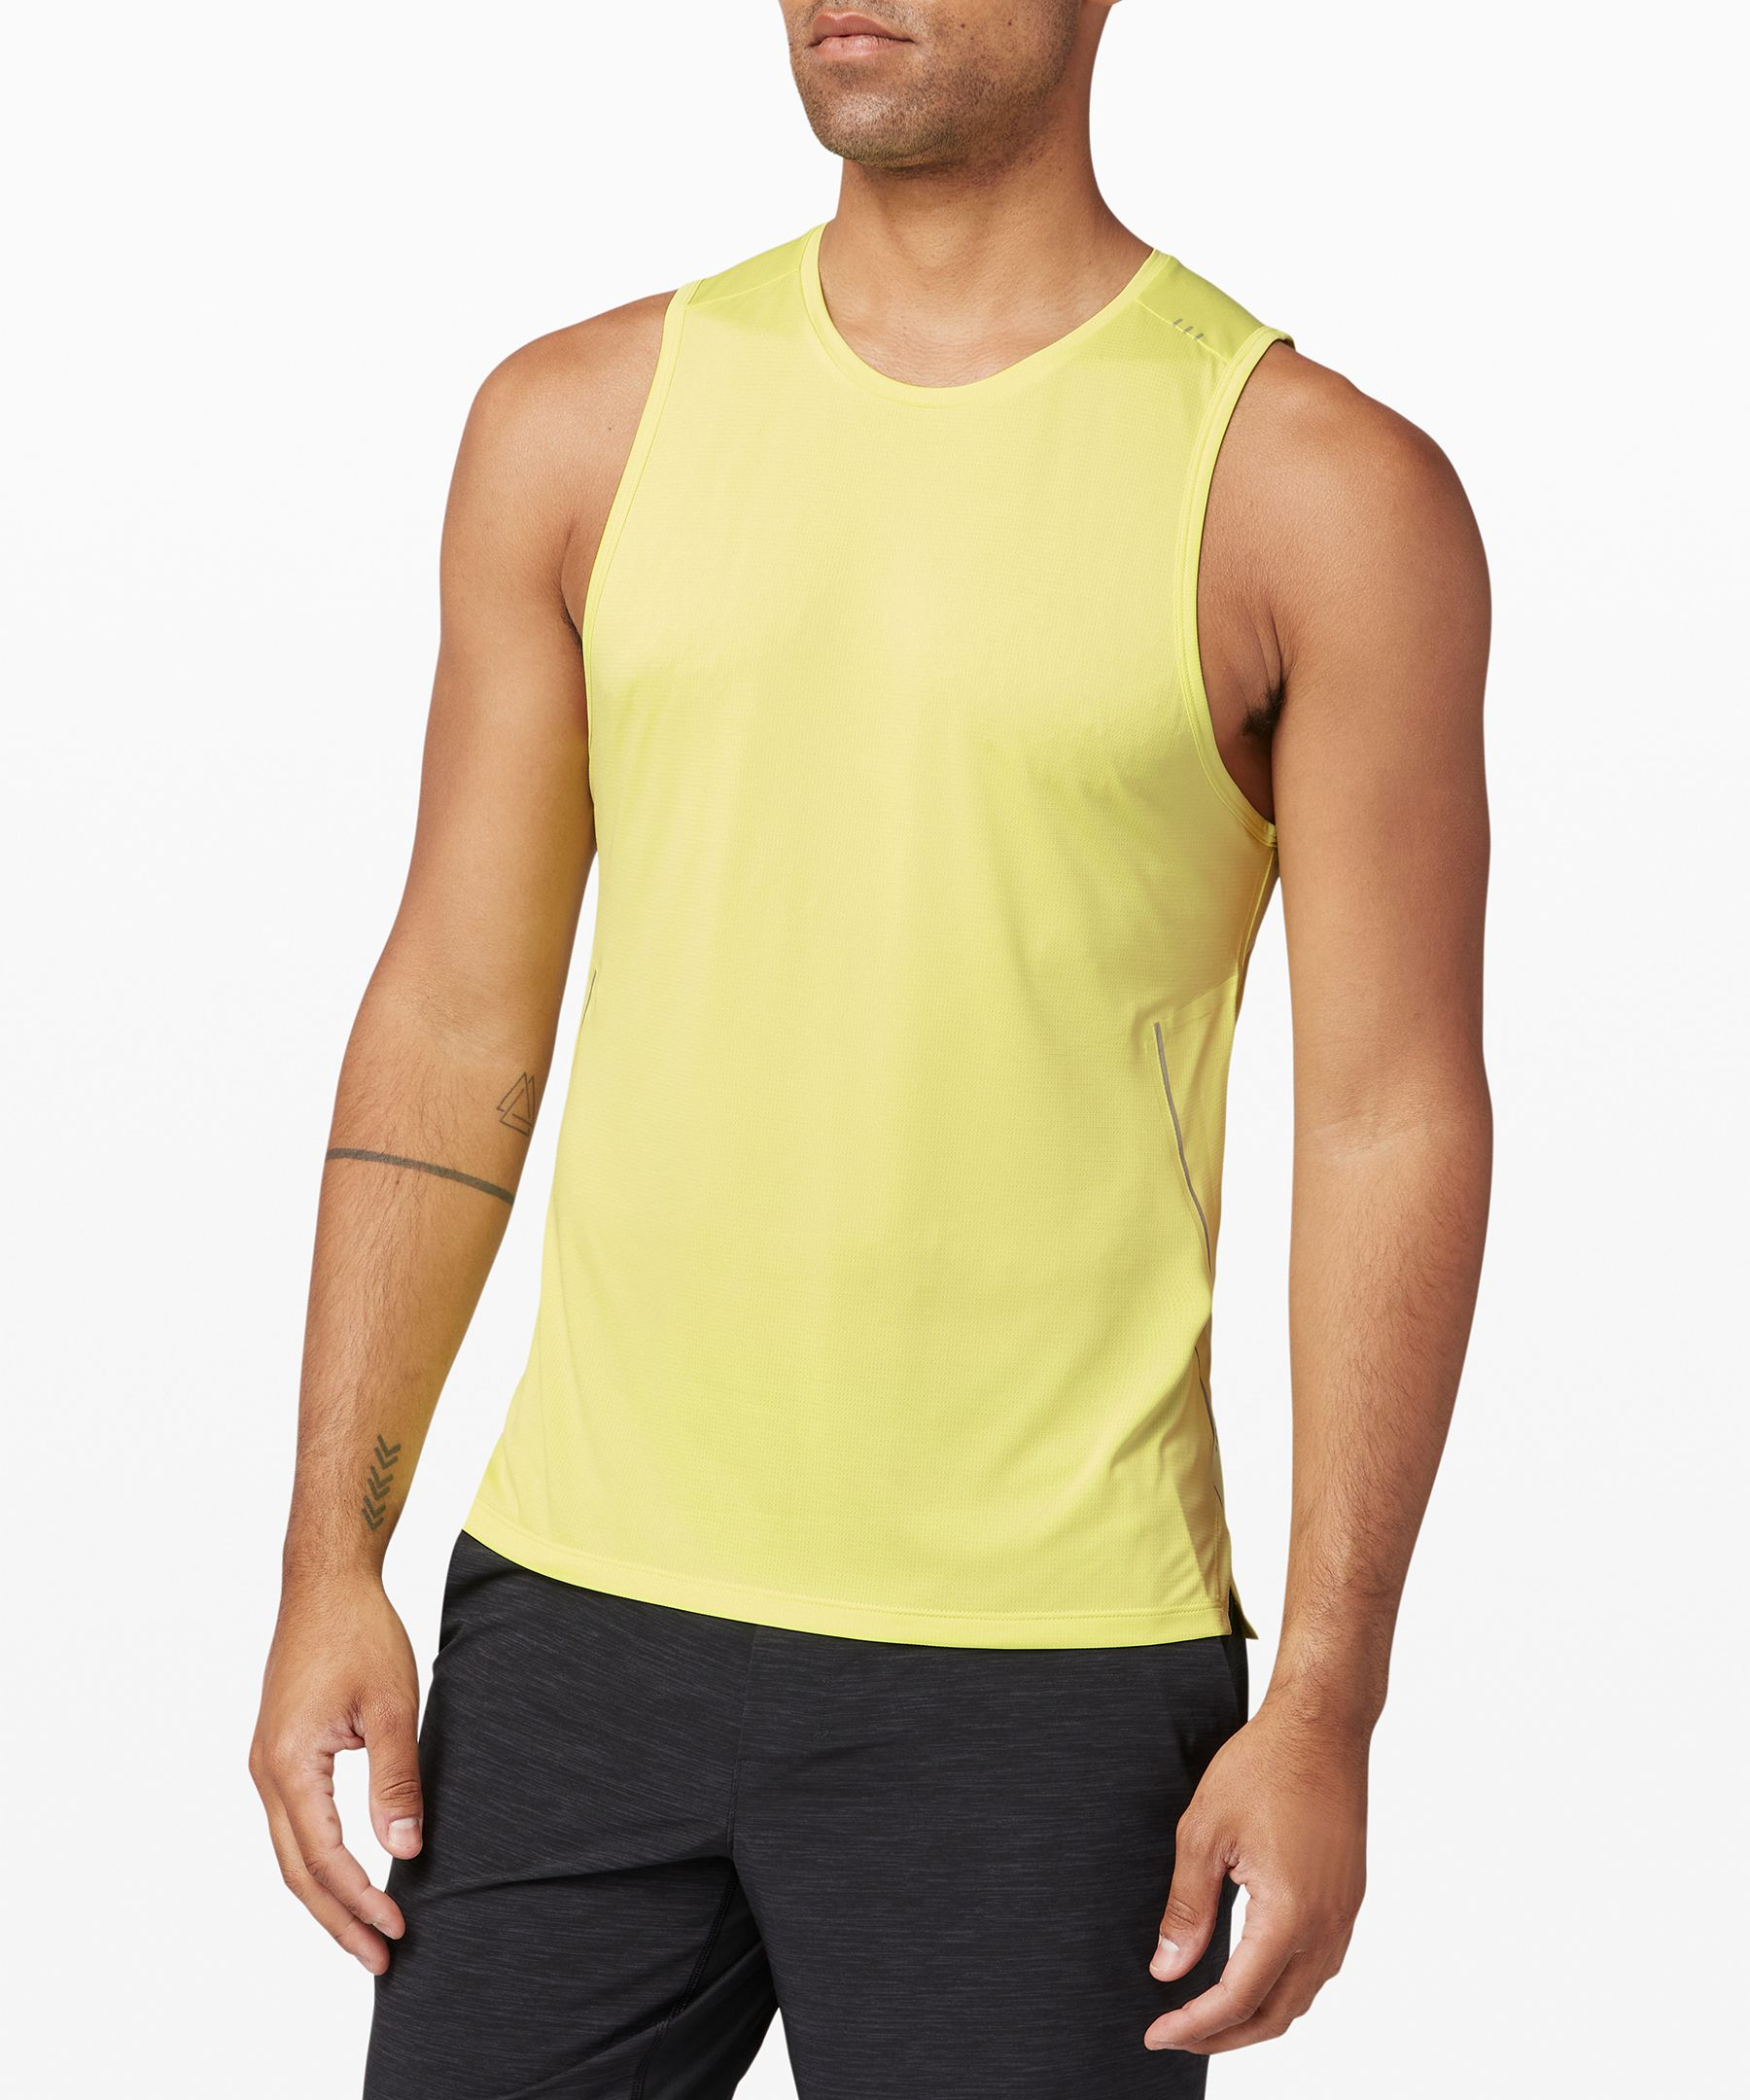 Power through your last mile  with nothing holding you back.  This breathable run tank is  made with super-lightweight  Mesh fabric to keep you  feeling fast and free.